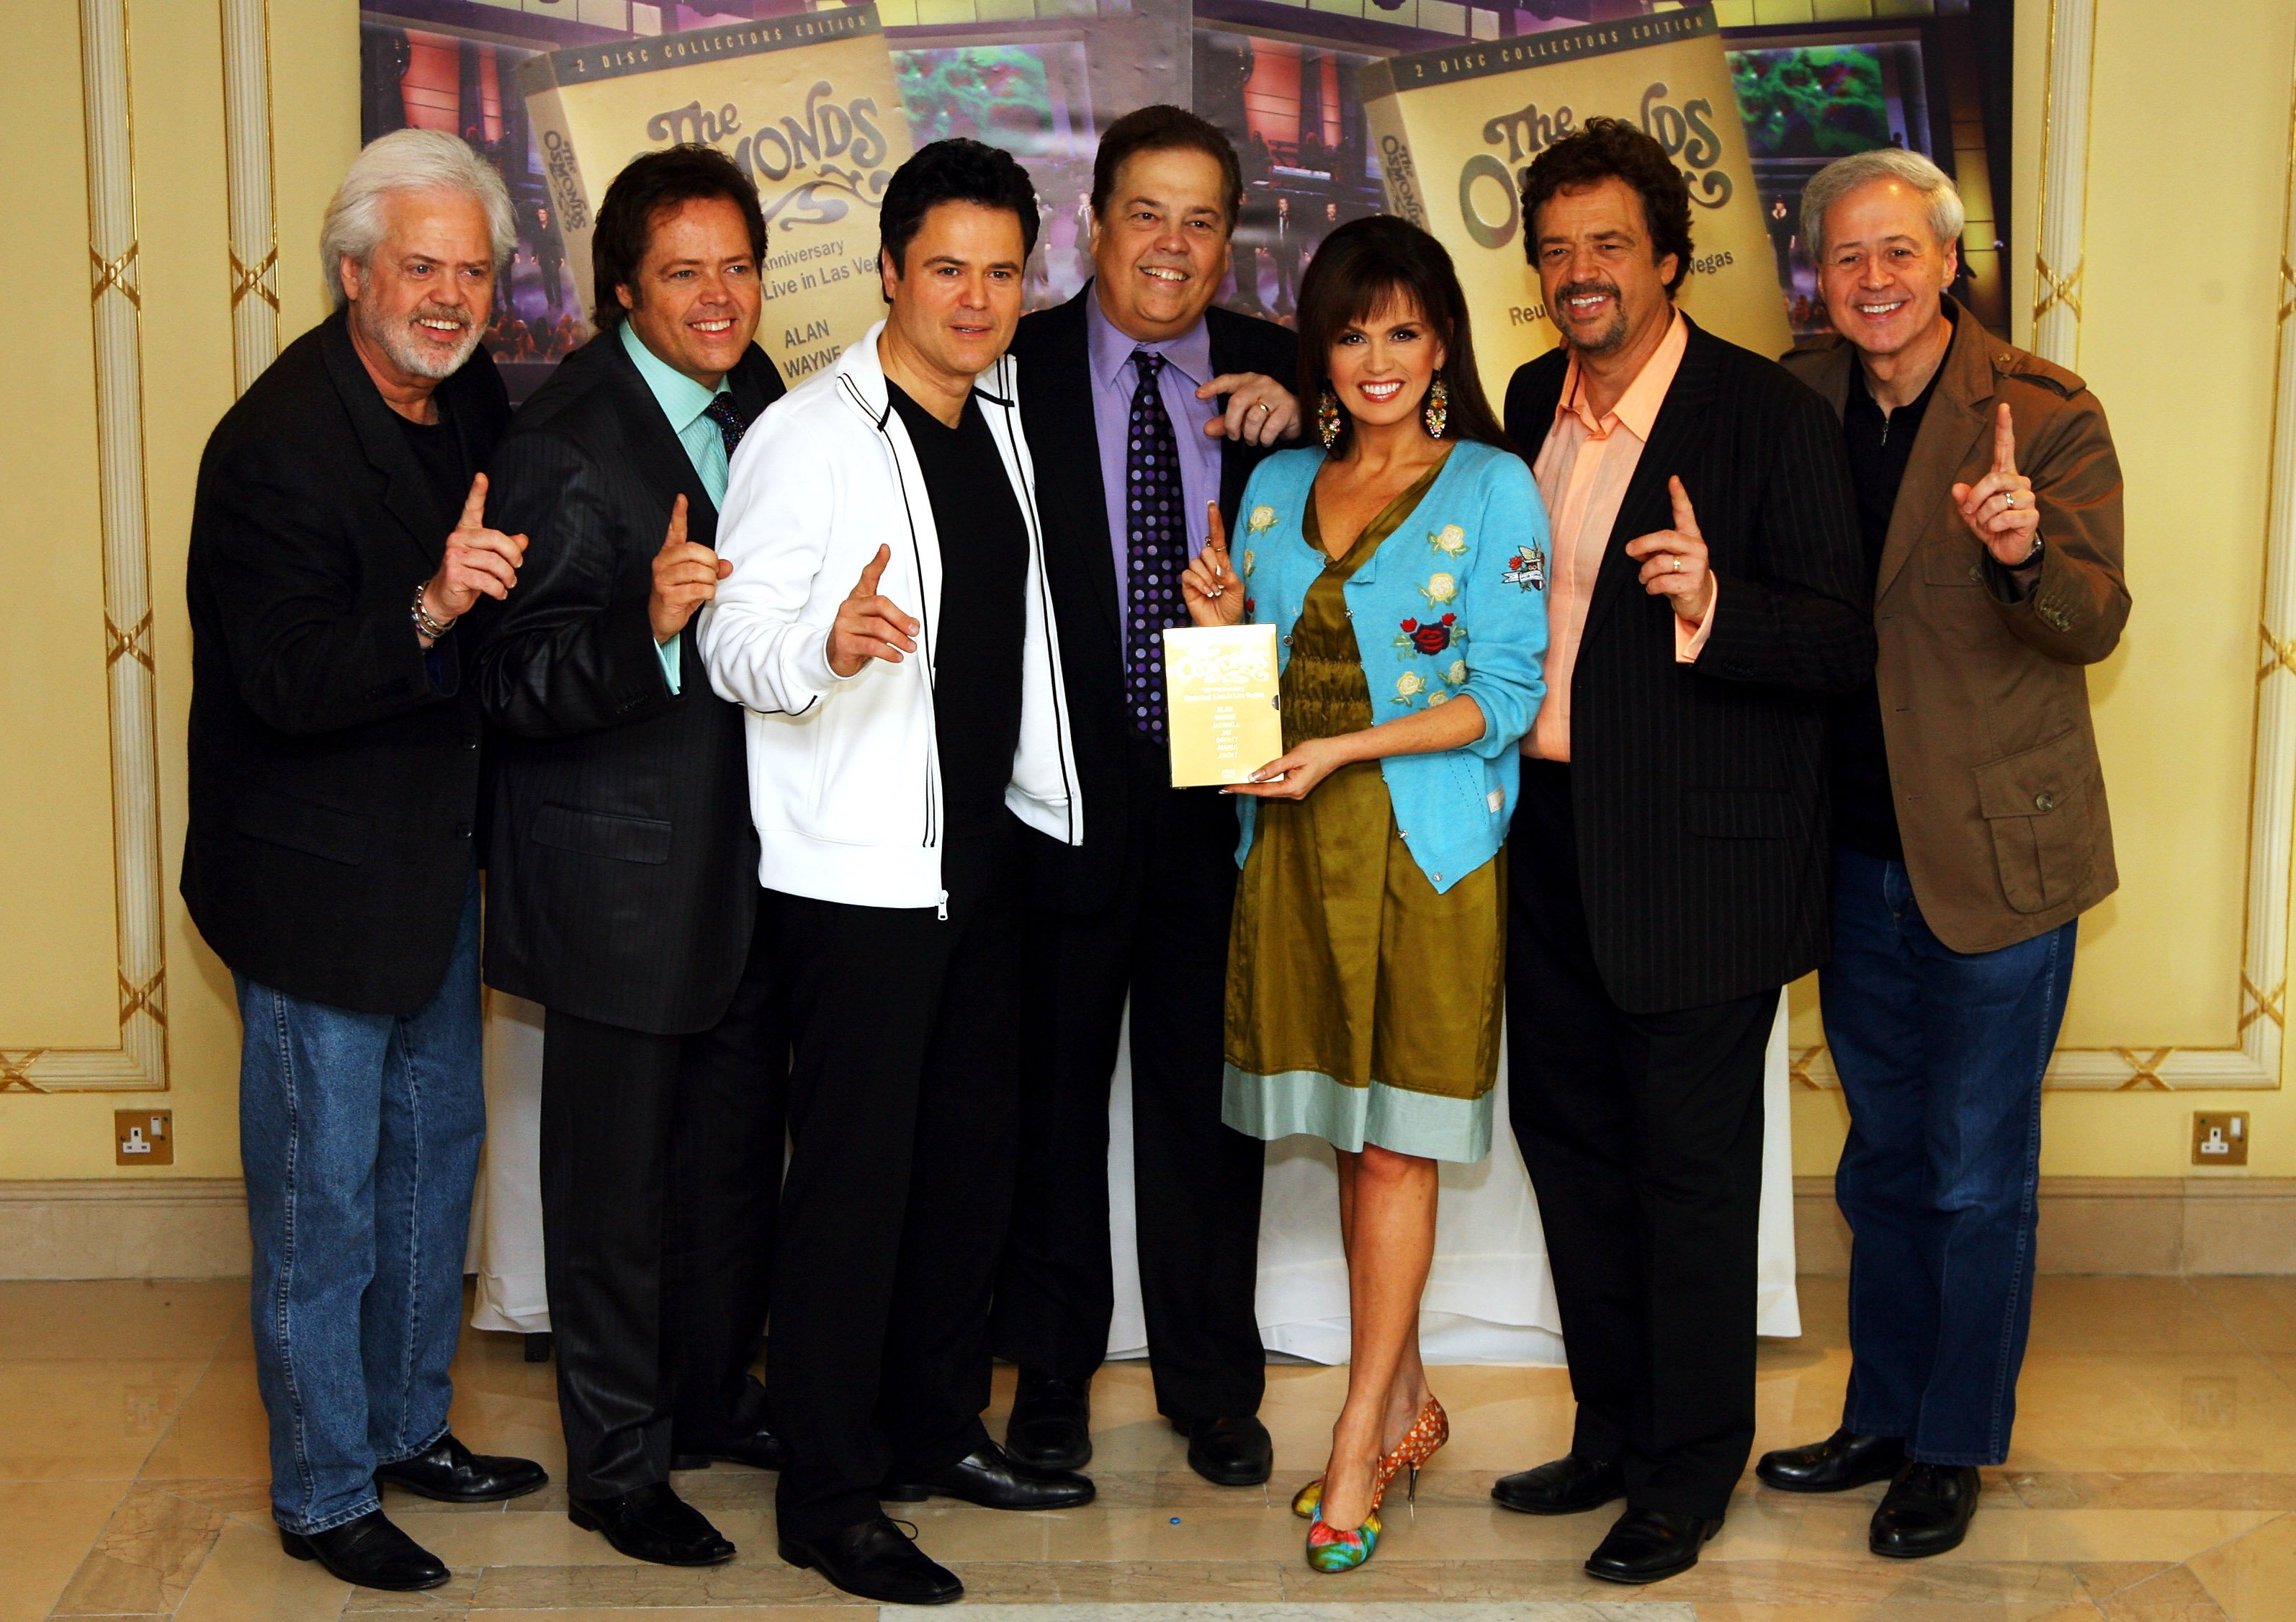 The Osmonds during a 2008 promotional tour in London. | Photo: Getty Images